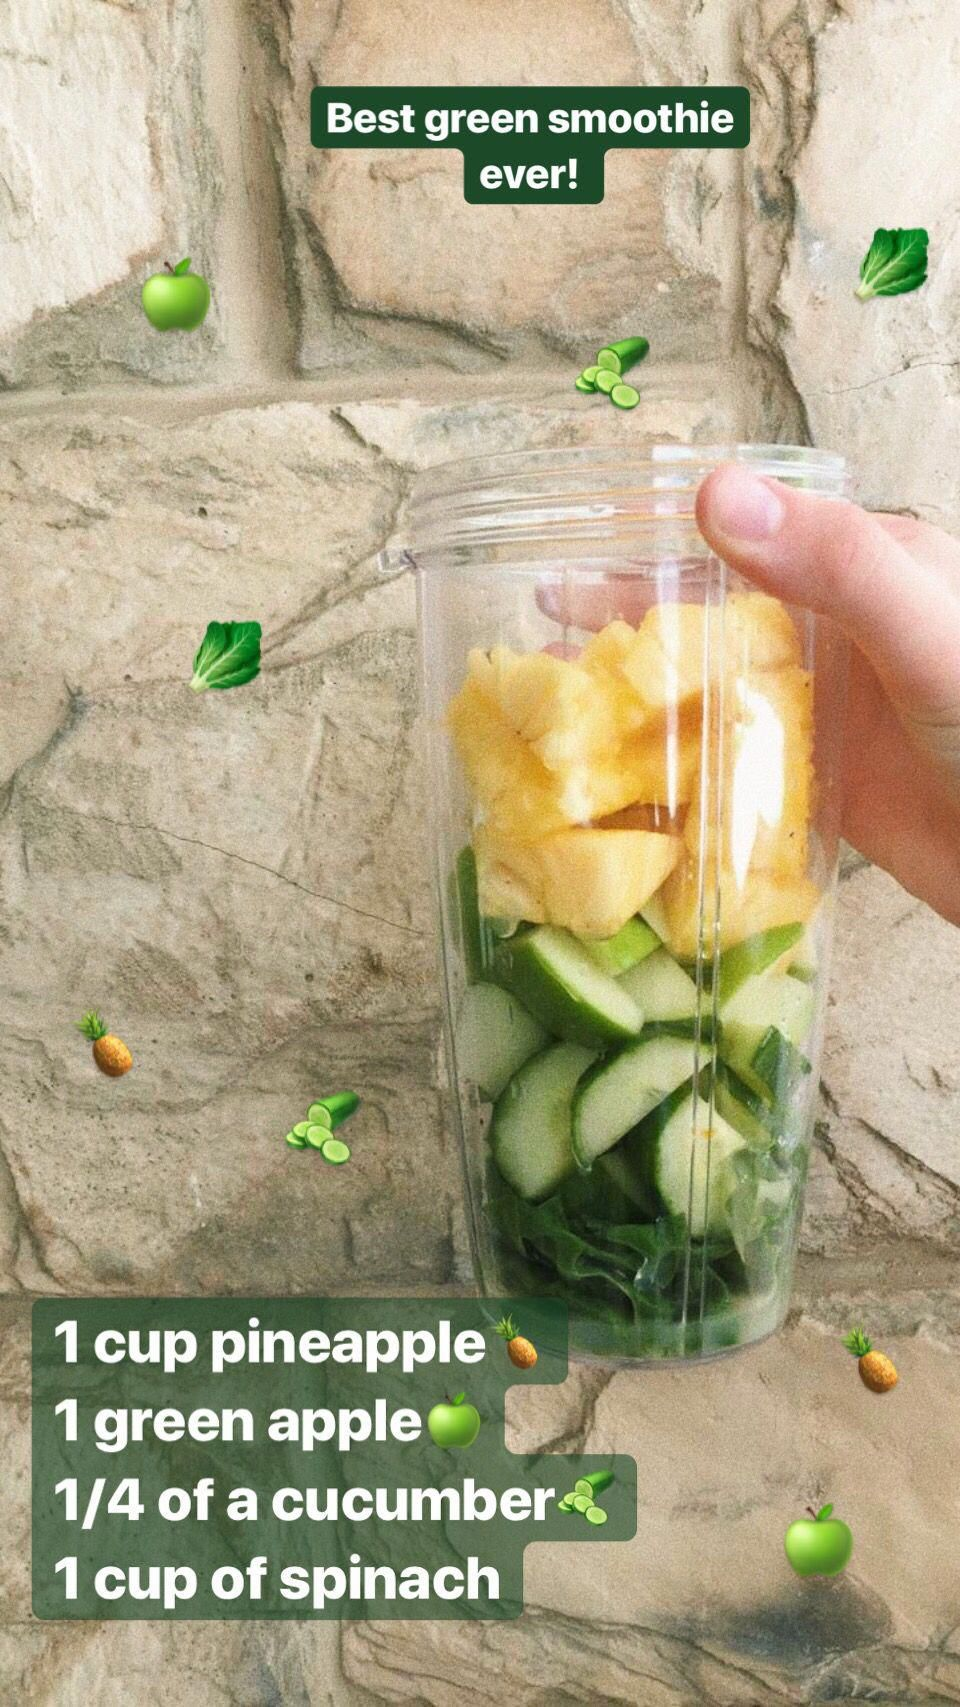 Best Smoothies For Weight LossGreat Advice For Green Smoothies Your Favorite Foods